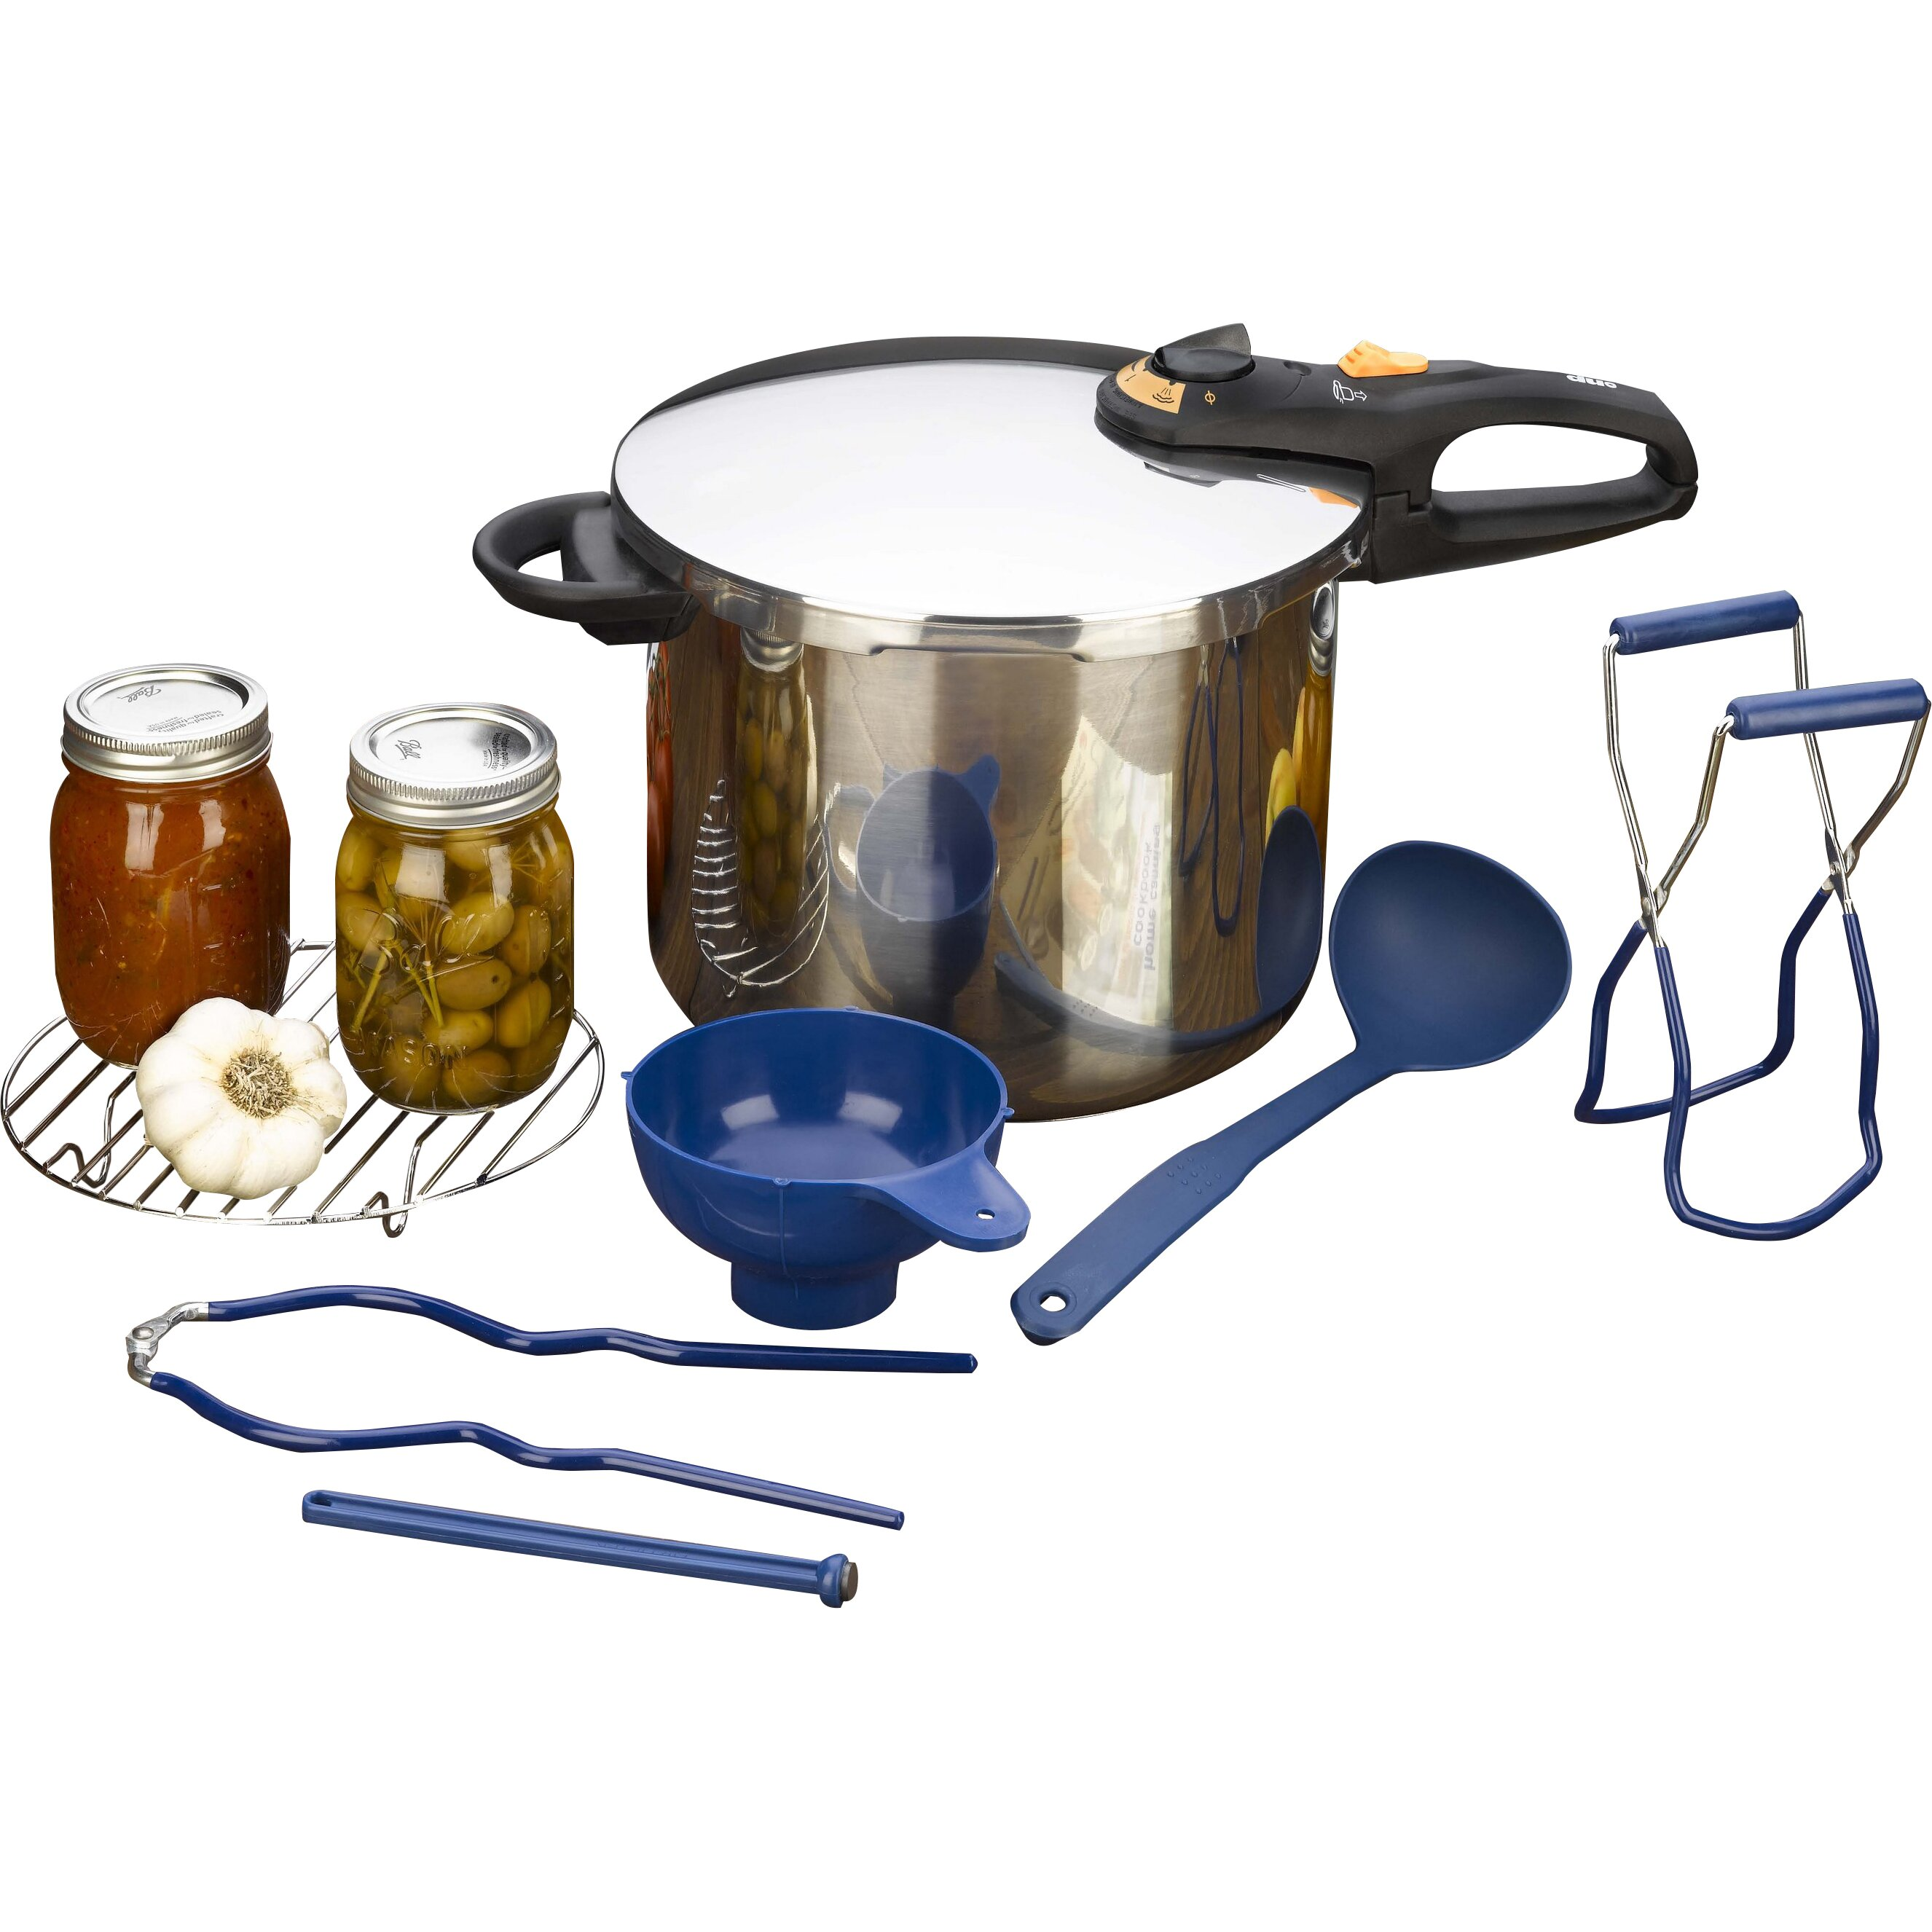 Fagor duo 8 quart pressure cooker - Fagor Duo 10 6 Quart Pressure Canning Set